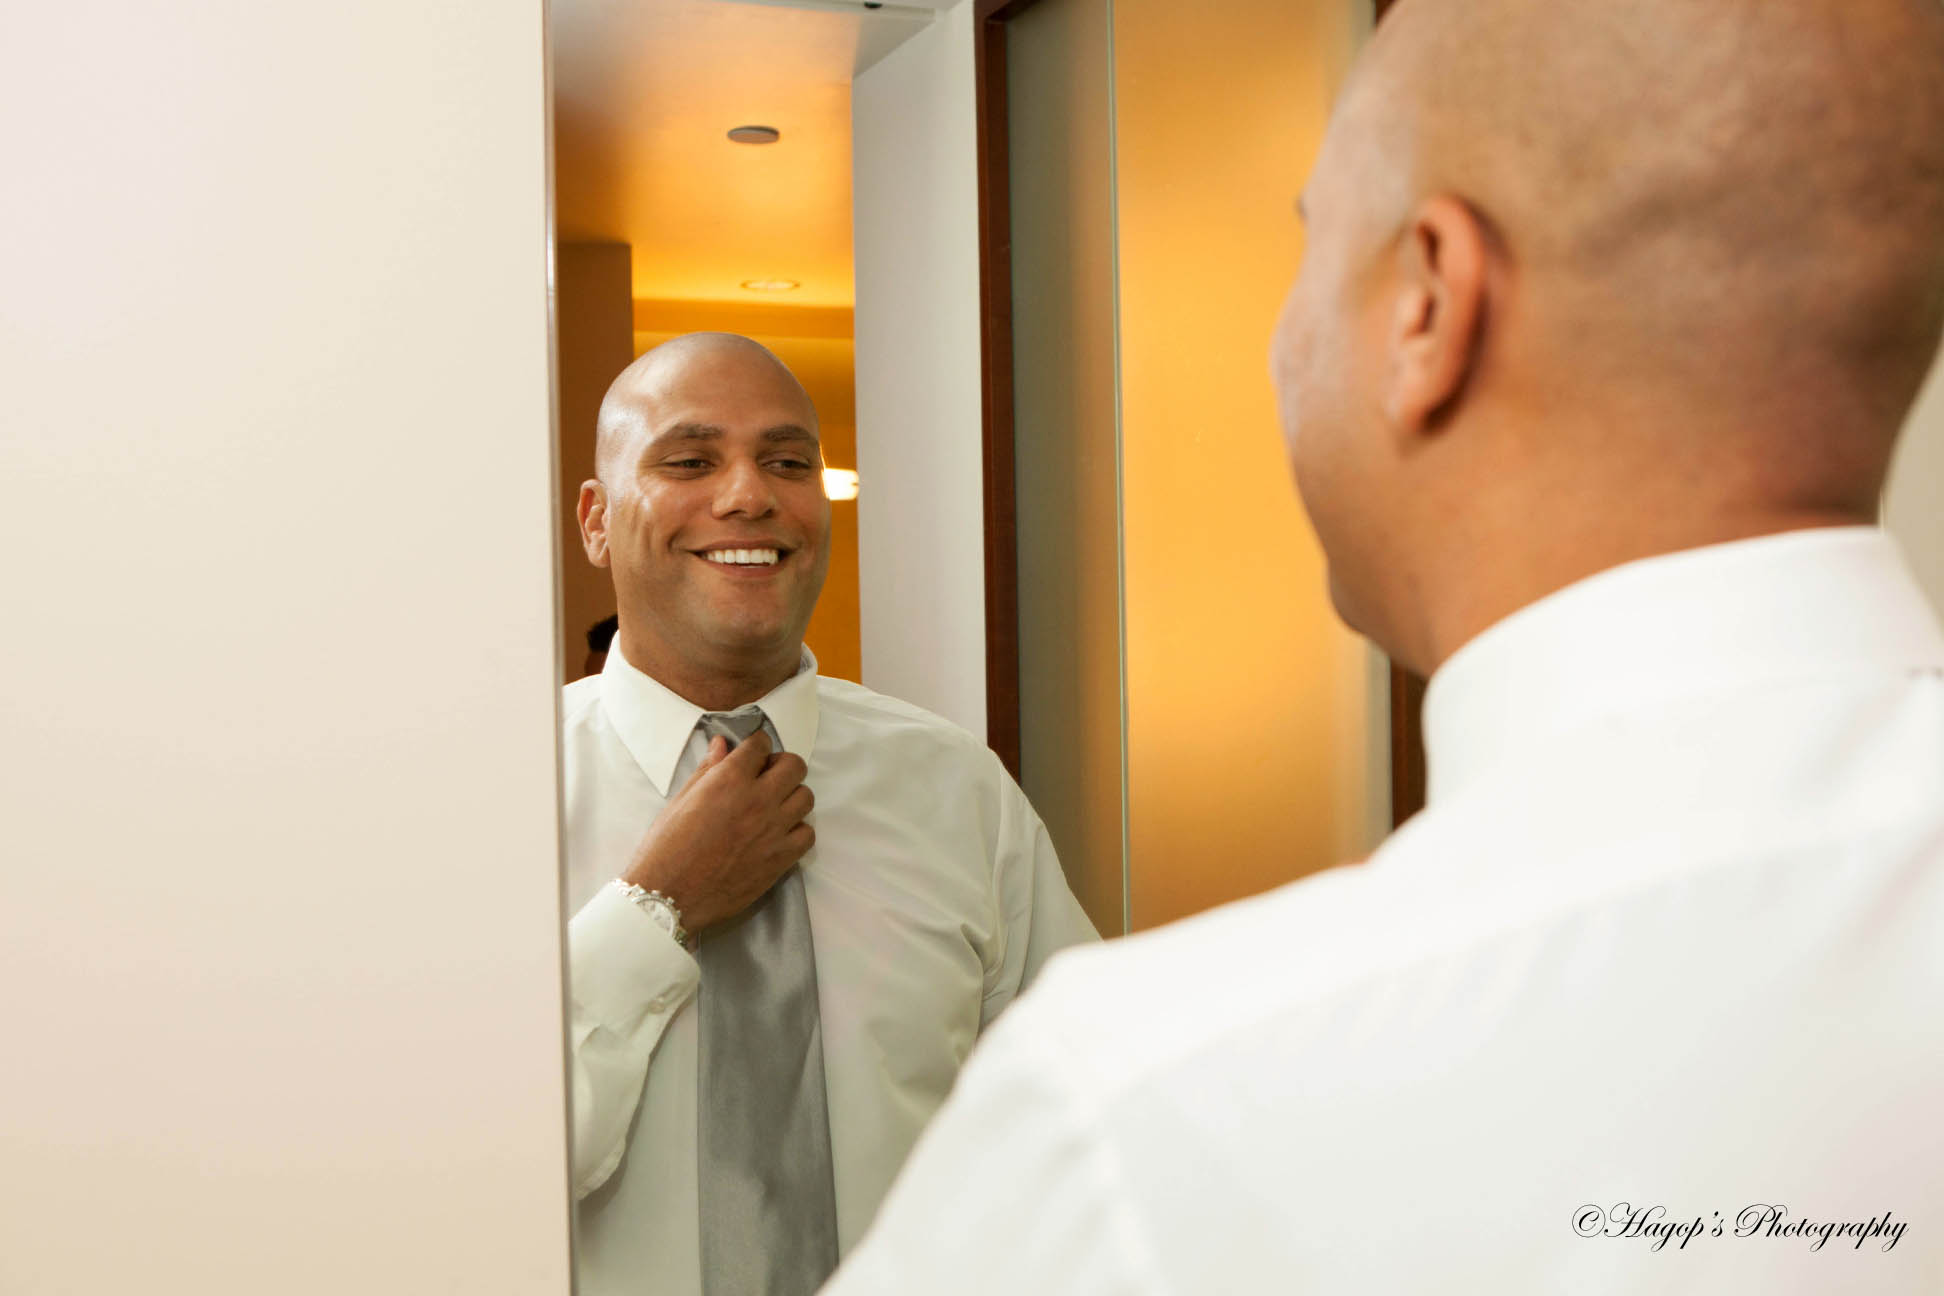 groom getting ready by fixing his tie